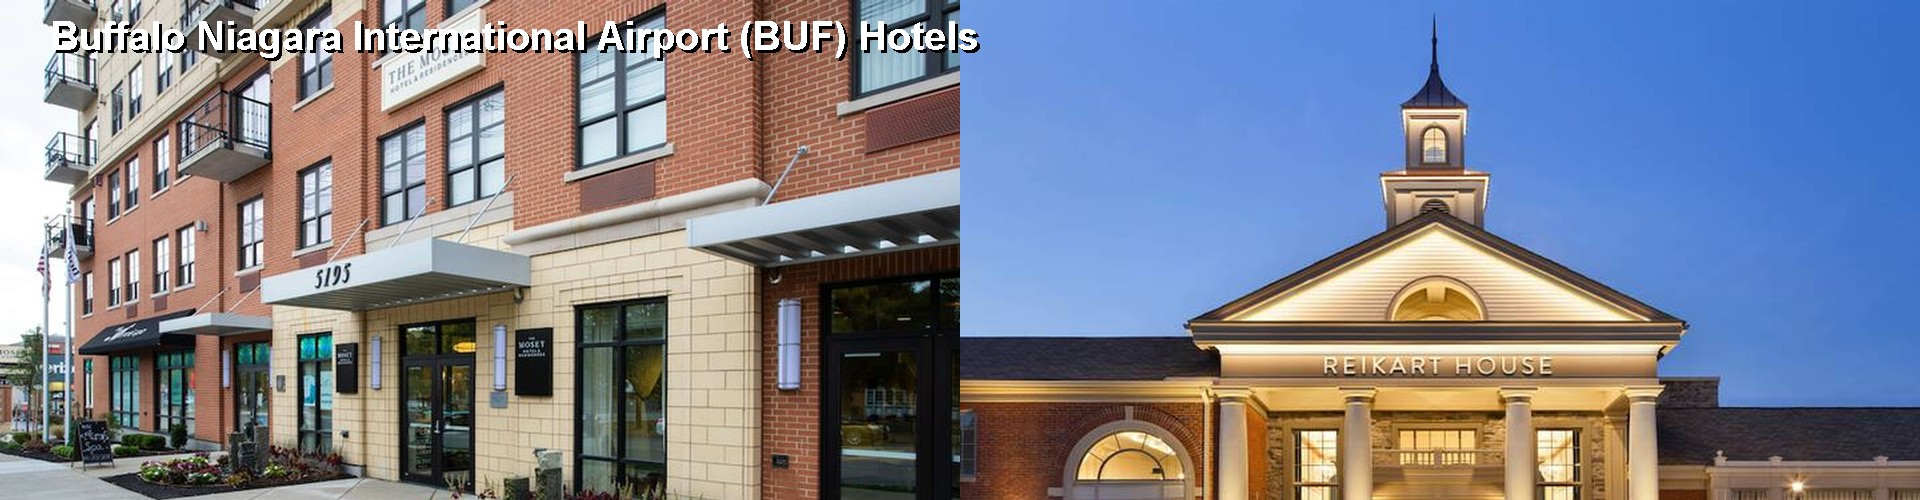 5 Best Hotels Near Buffalo Niagara International Airport Buf